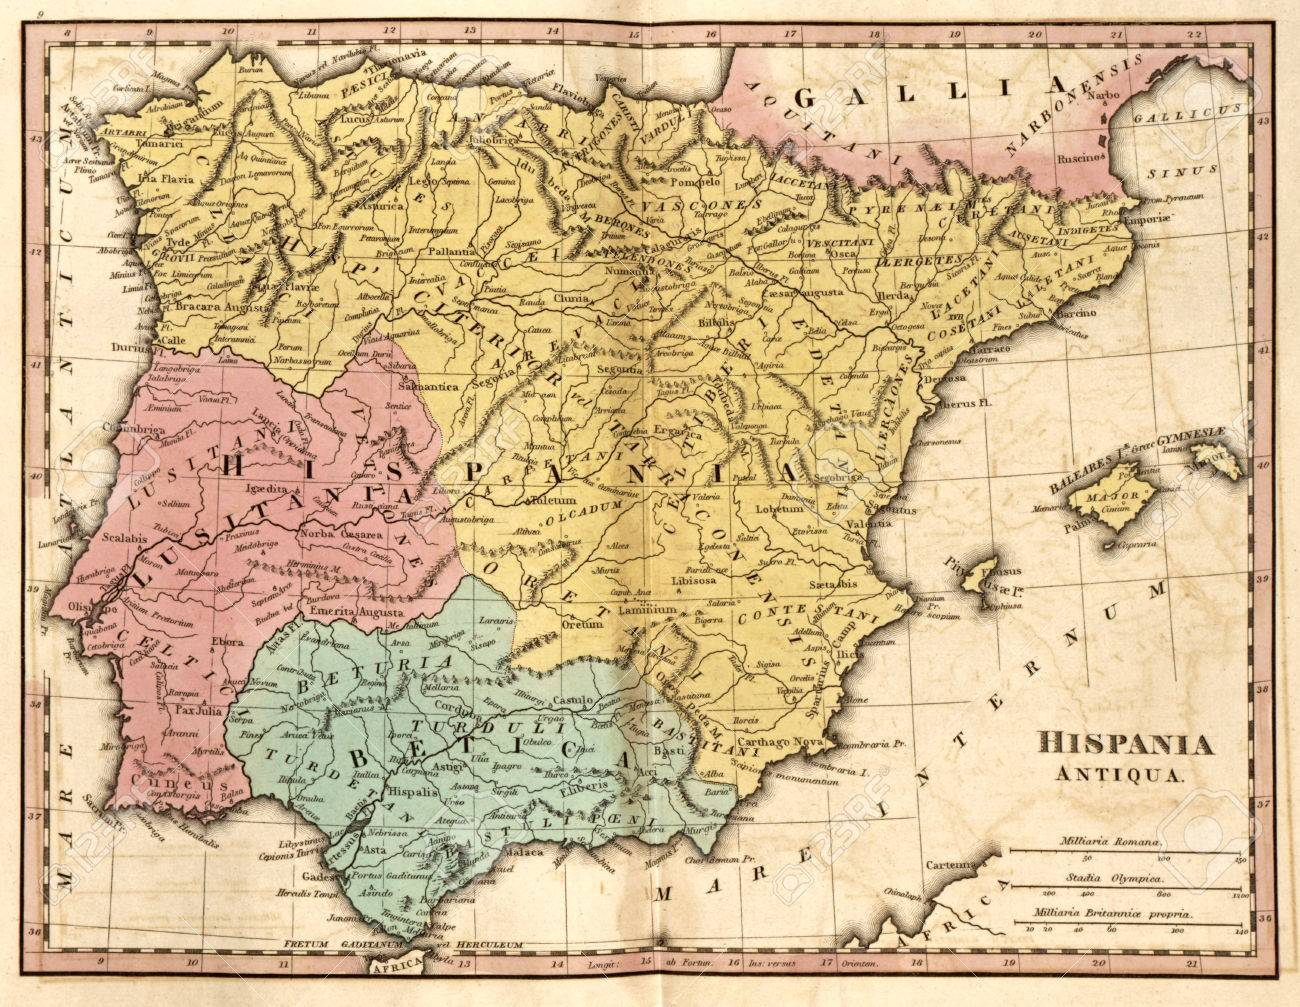 Detailed map of the Iberian Peninsula and the Balearic Isles.. on croatia world map, polynesia world map, arabian desert on world map, salem world map, asante world map, ascension world map, houston world map, english channel world map, britannia world map, northwest world map, south asia on world map, philadelphia world map, tap world map, anatolia on world map, st. martin world map, acadia world map, sas world map, mesoamerica world map, congo river world map, danube world map,